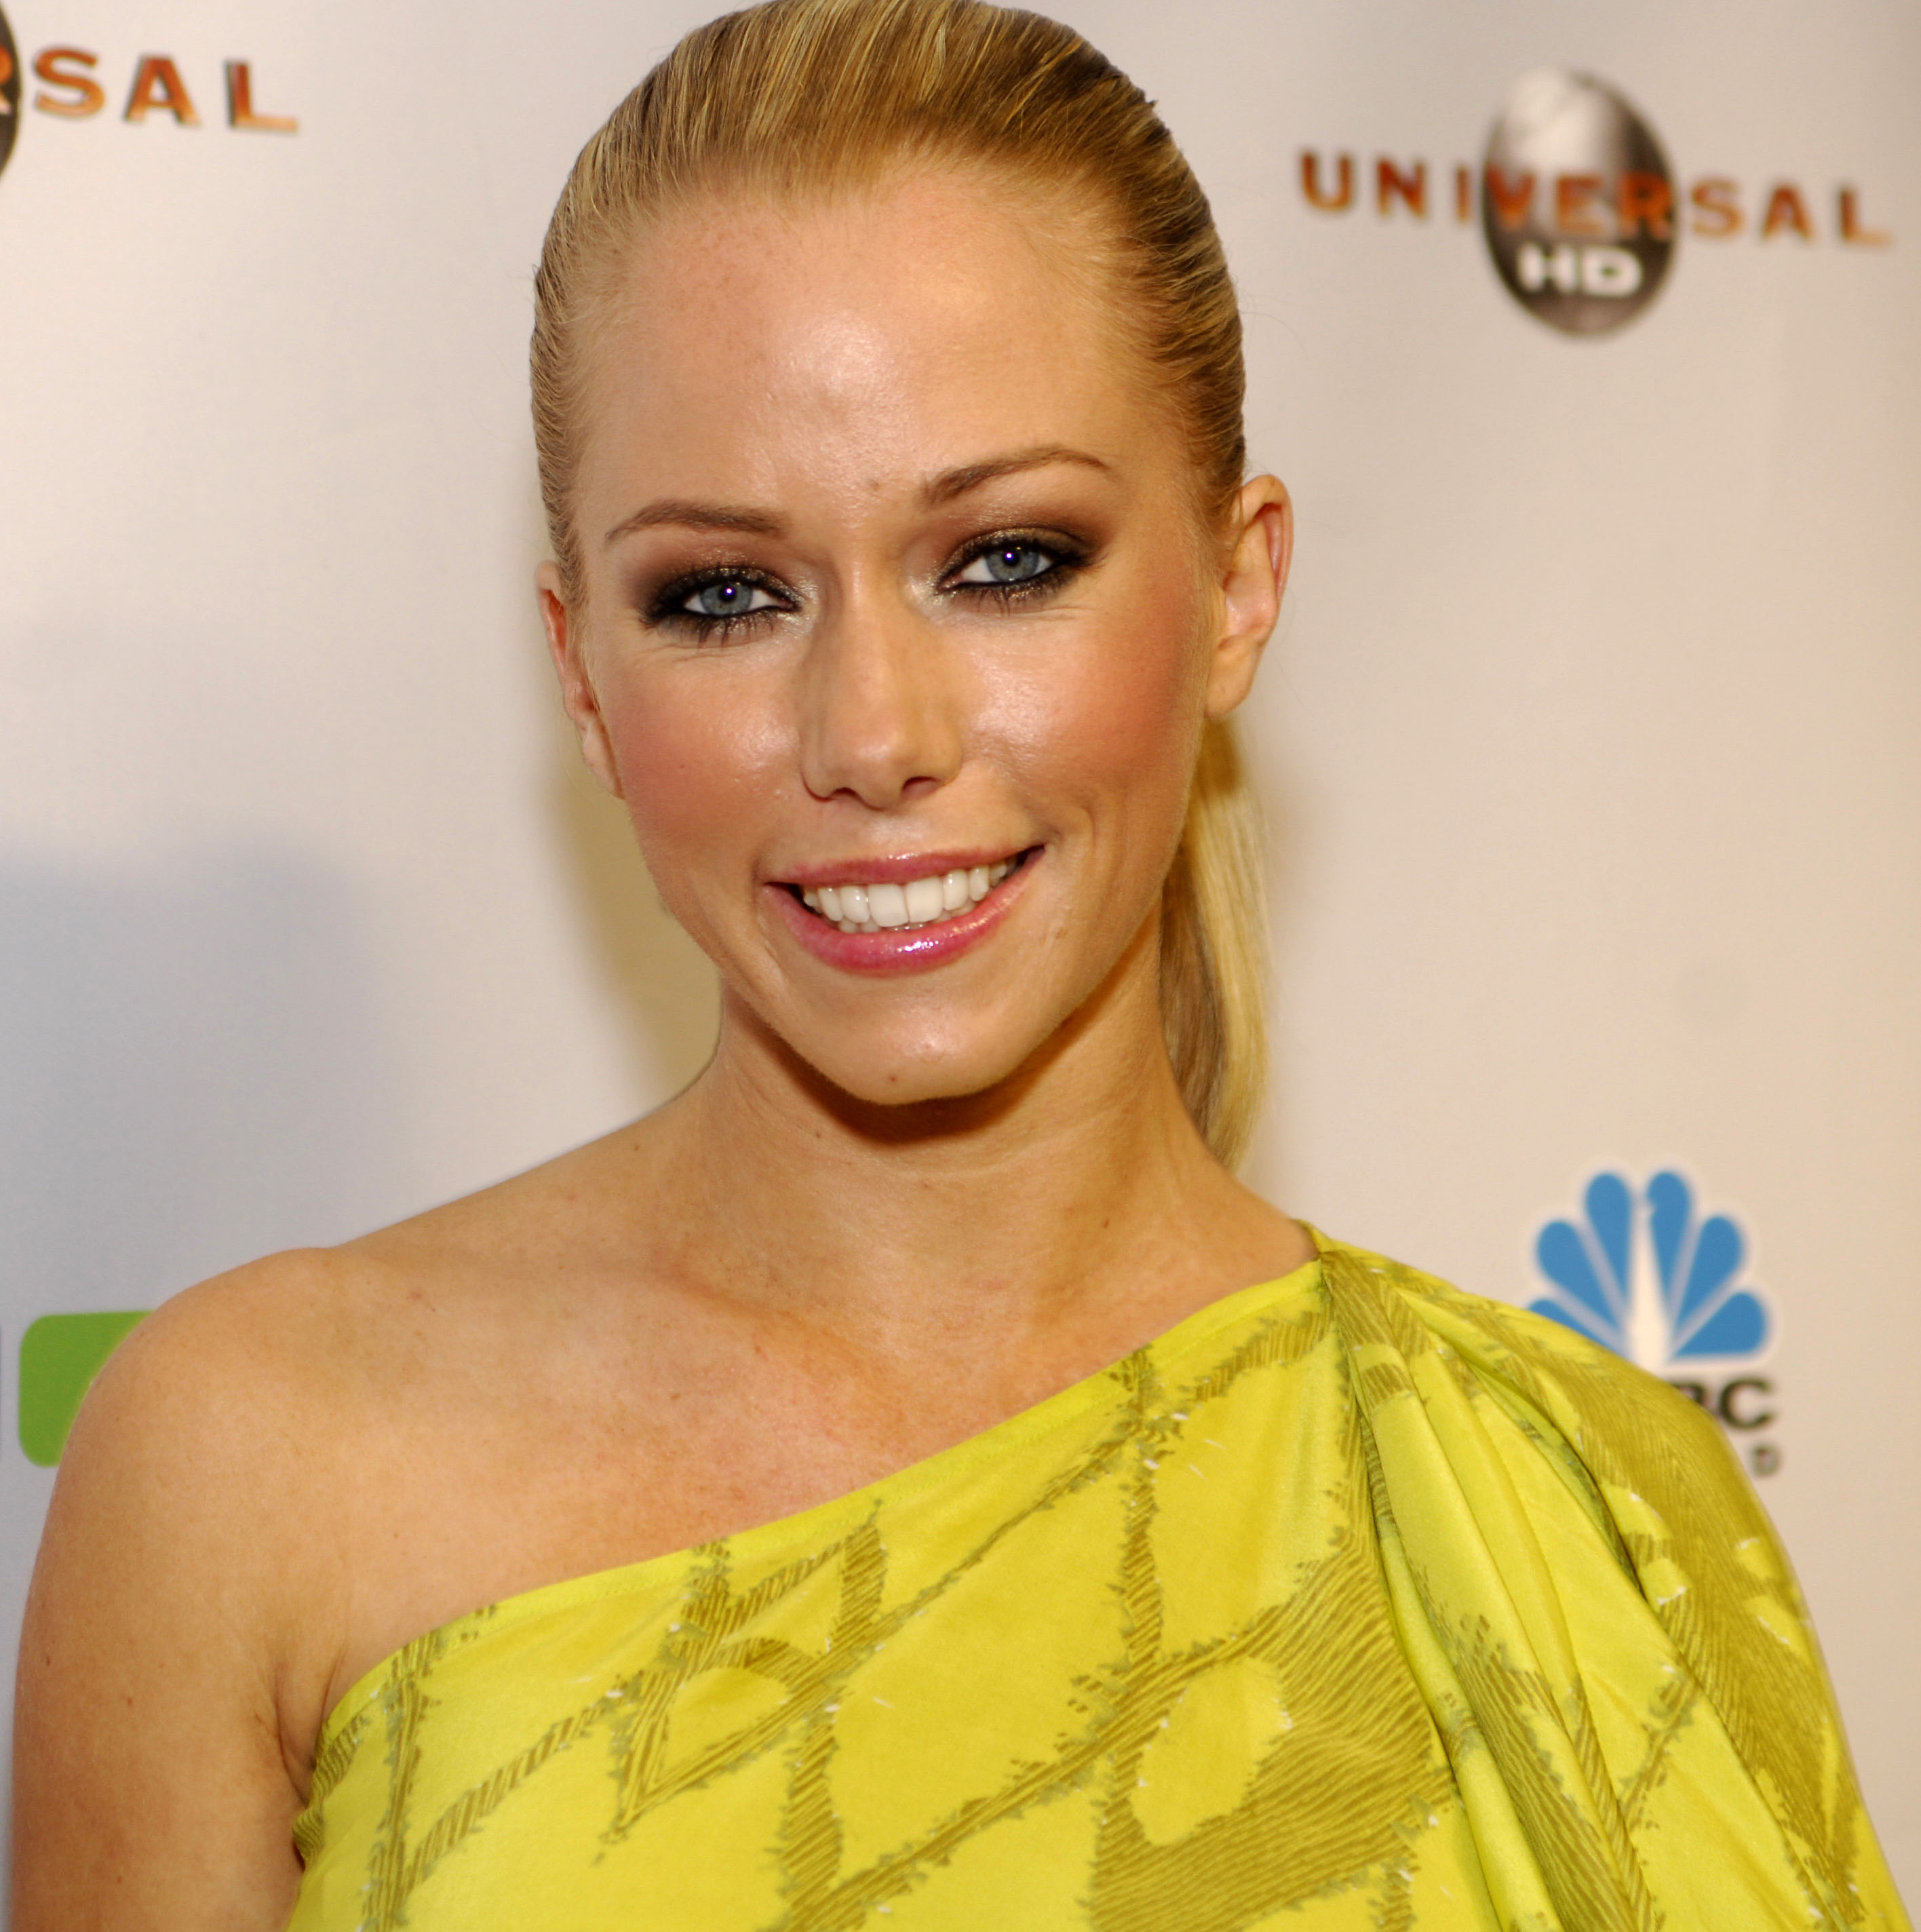 Kendra Wilkinson goes topless while revisiting Playboy days